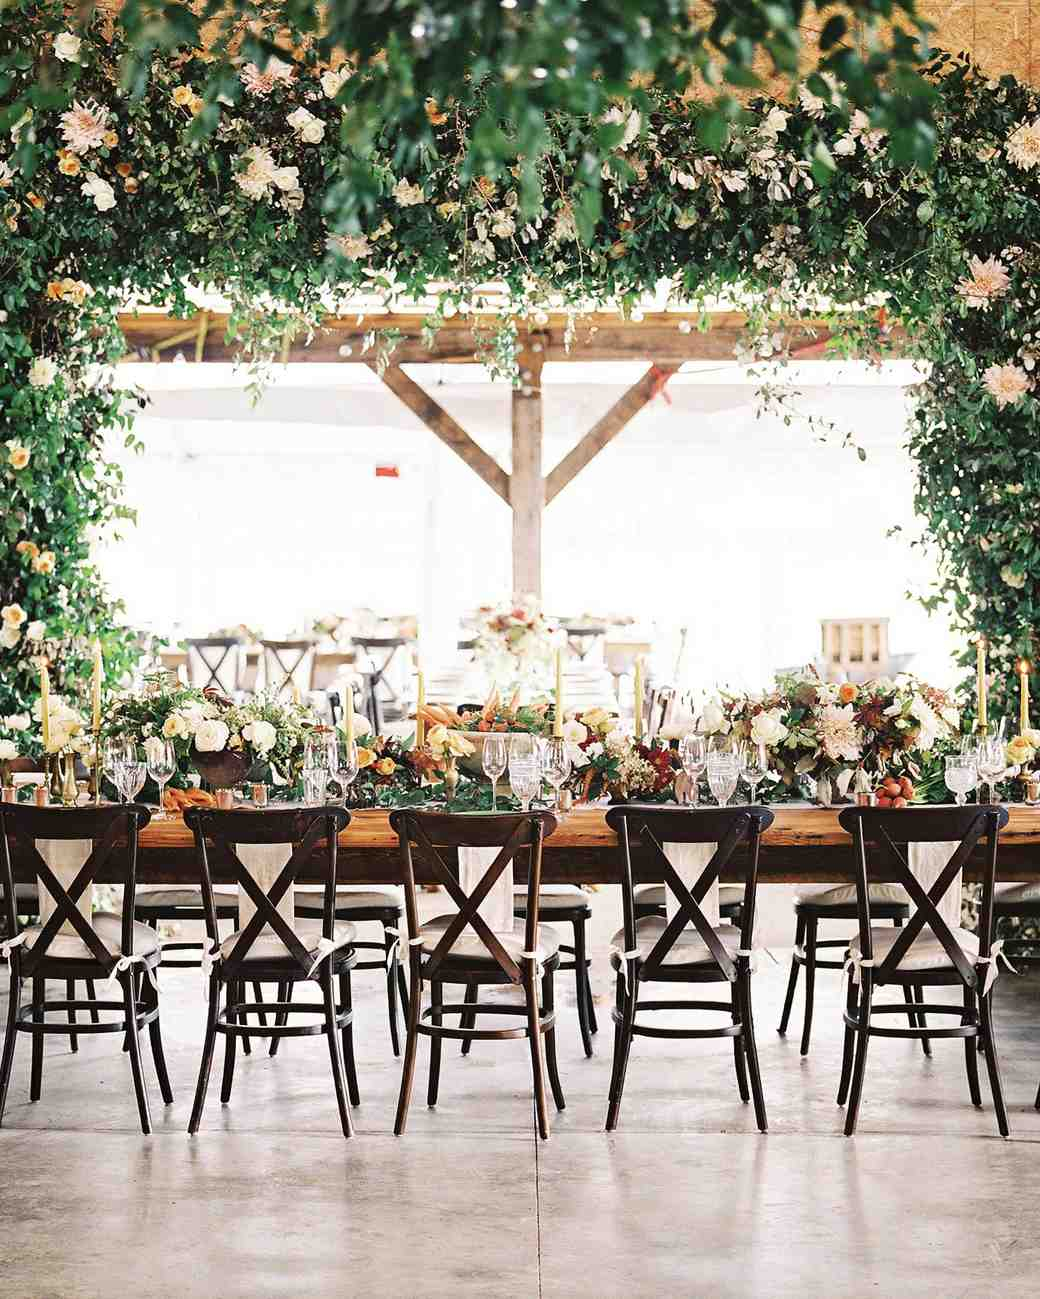 children s table and chairs wooden poang chair accessories an elegant-meets-rustic farm wedding in north carolina | martha stewart weddings